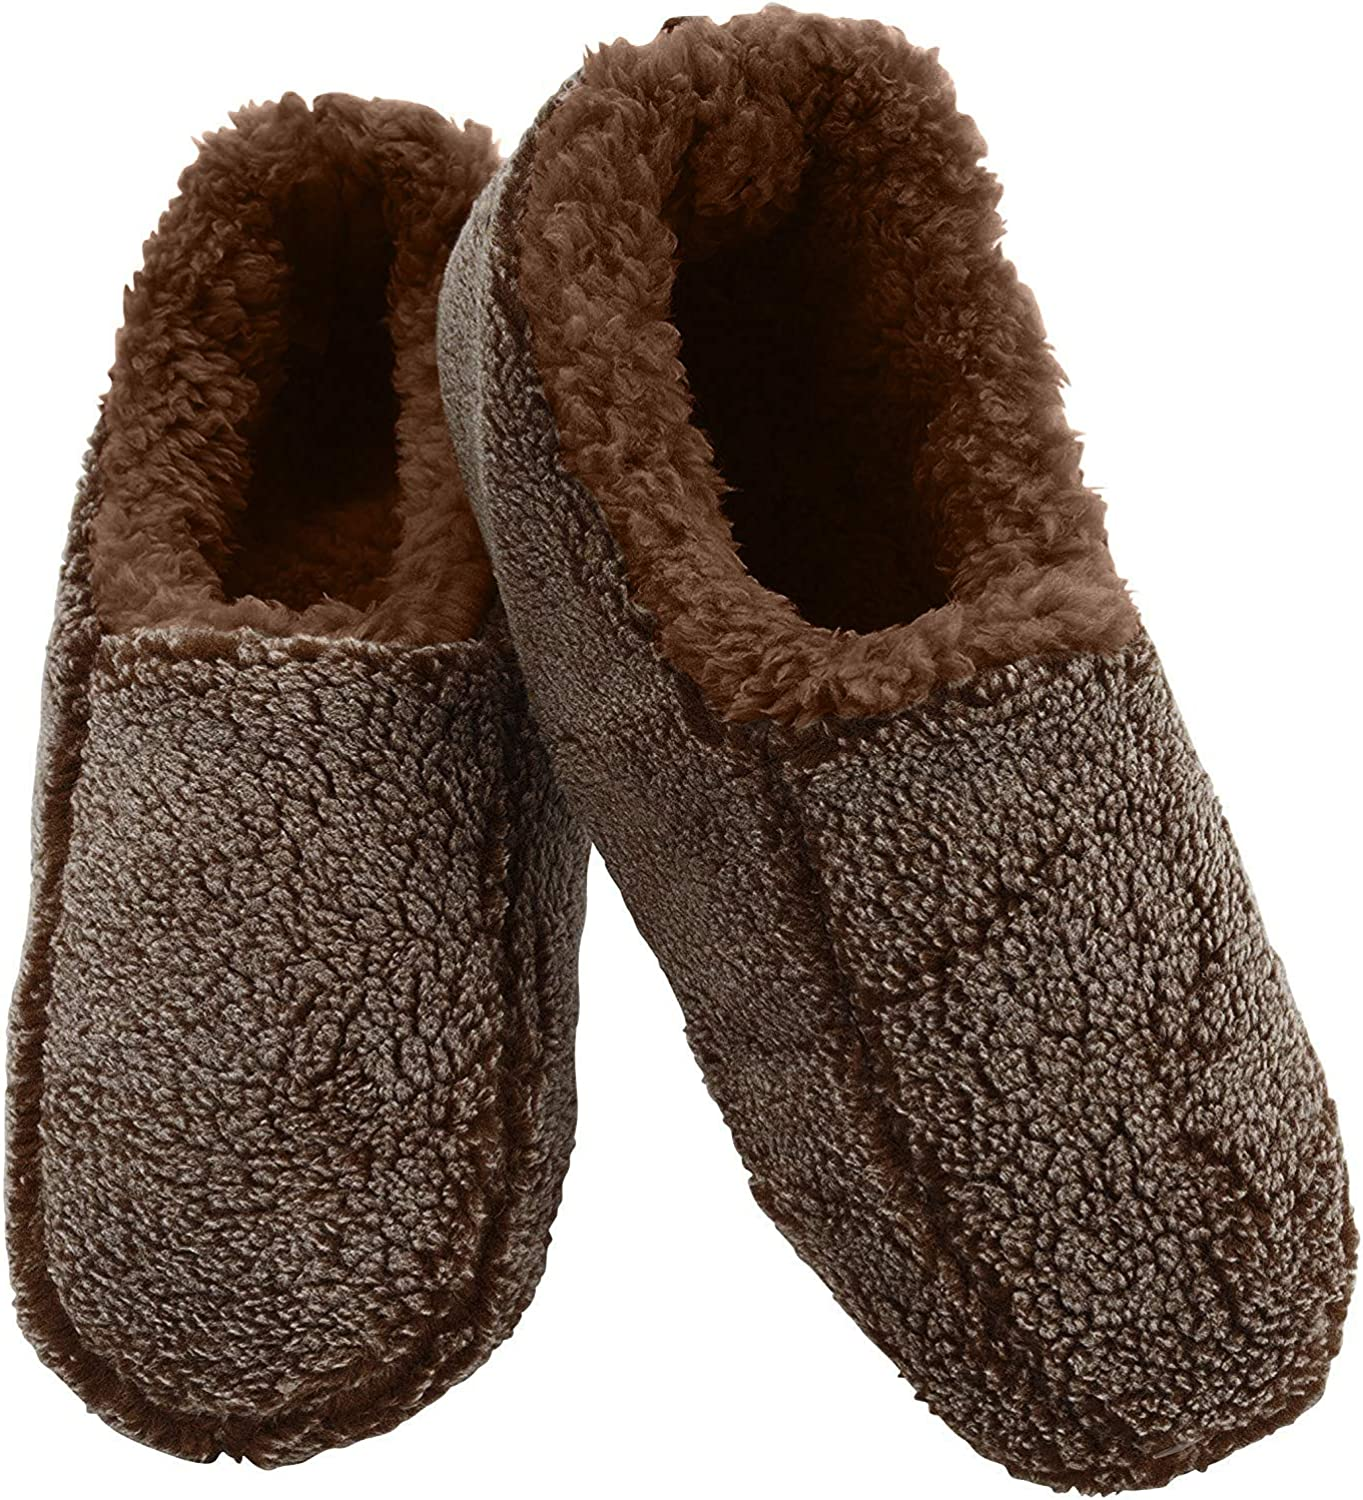 Multiple Sizes and Colors Snoozies Mens Two Tone Fleece Lined Slippers Fuzzy Mens Slipper Socks Comfortable Slippers for Men Soft Sole Mens House Slippers